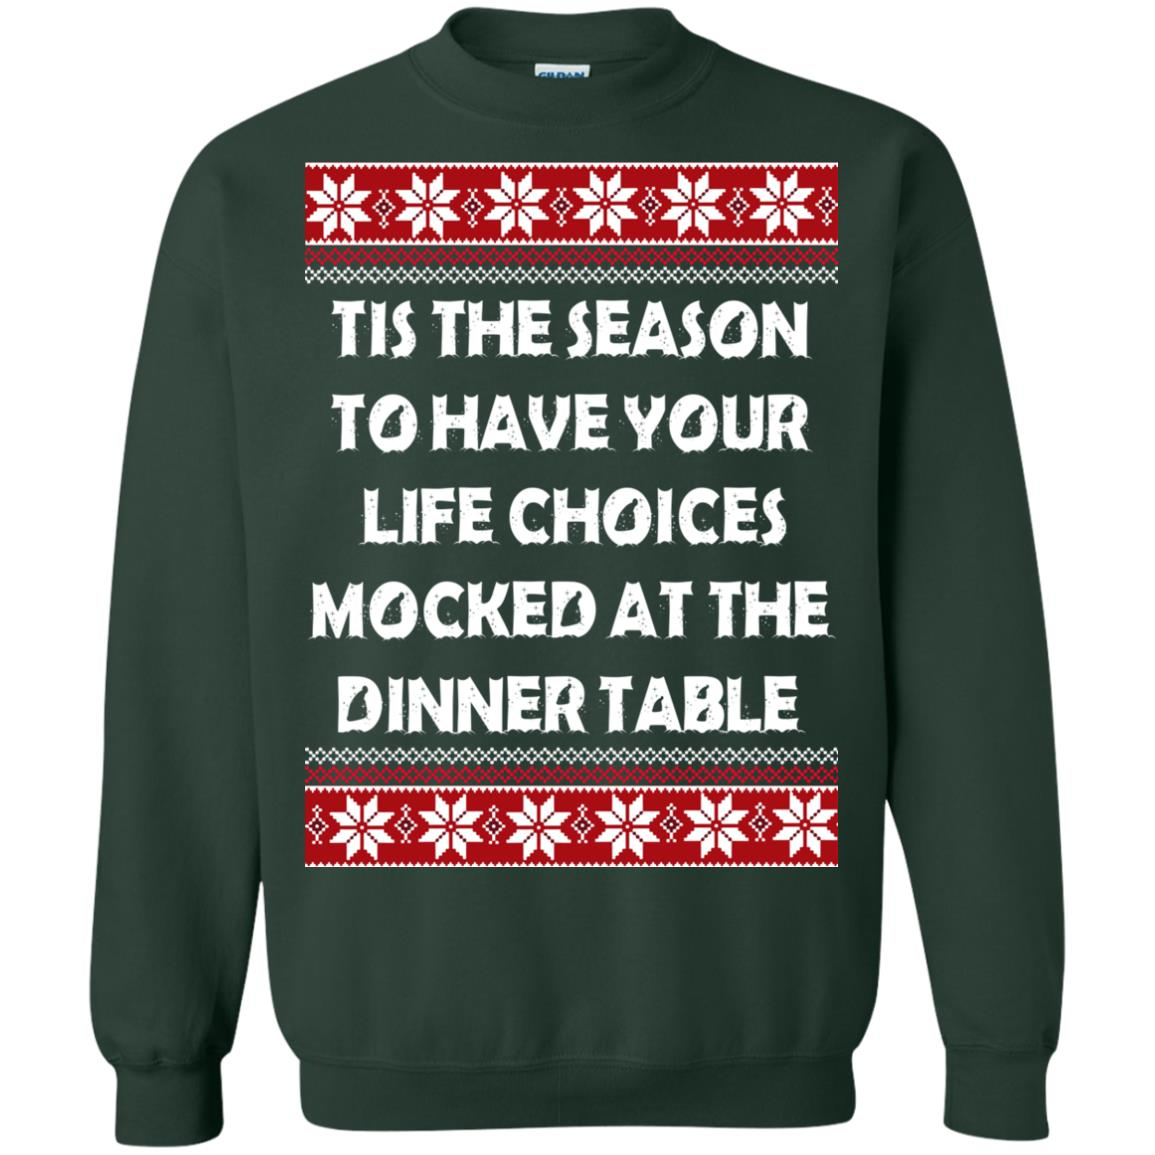 image 5899 - Tis The Season To Have Your Life Choices Mocked Christmas Sweater, Hoodie